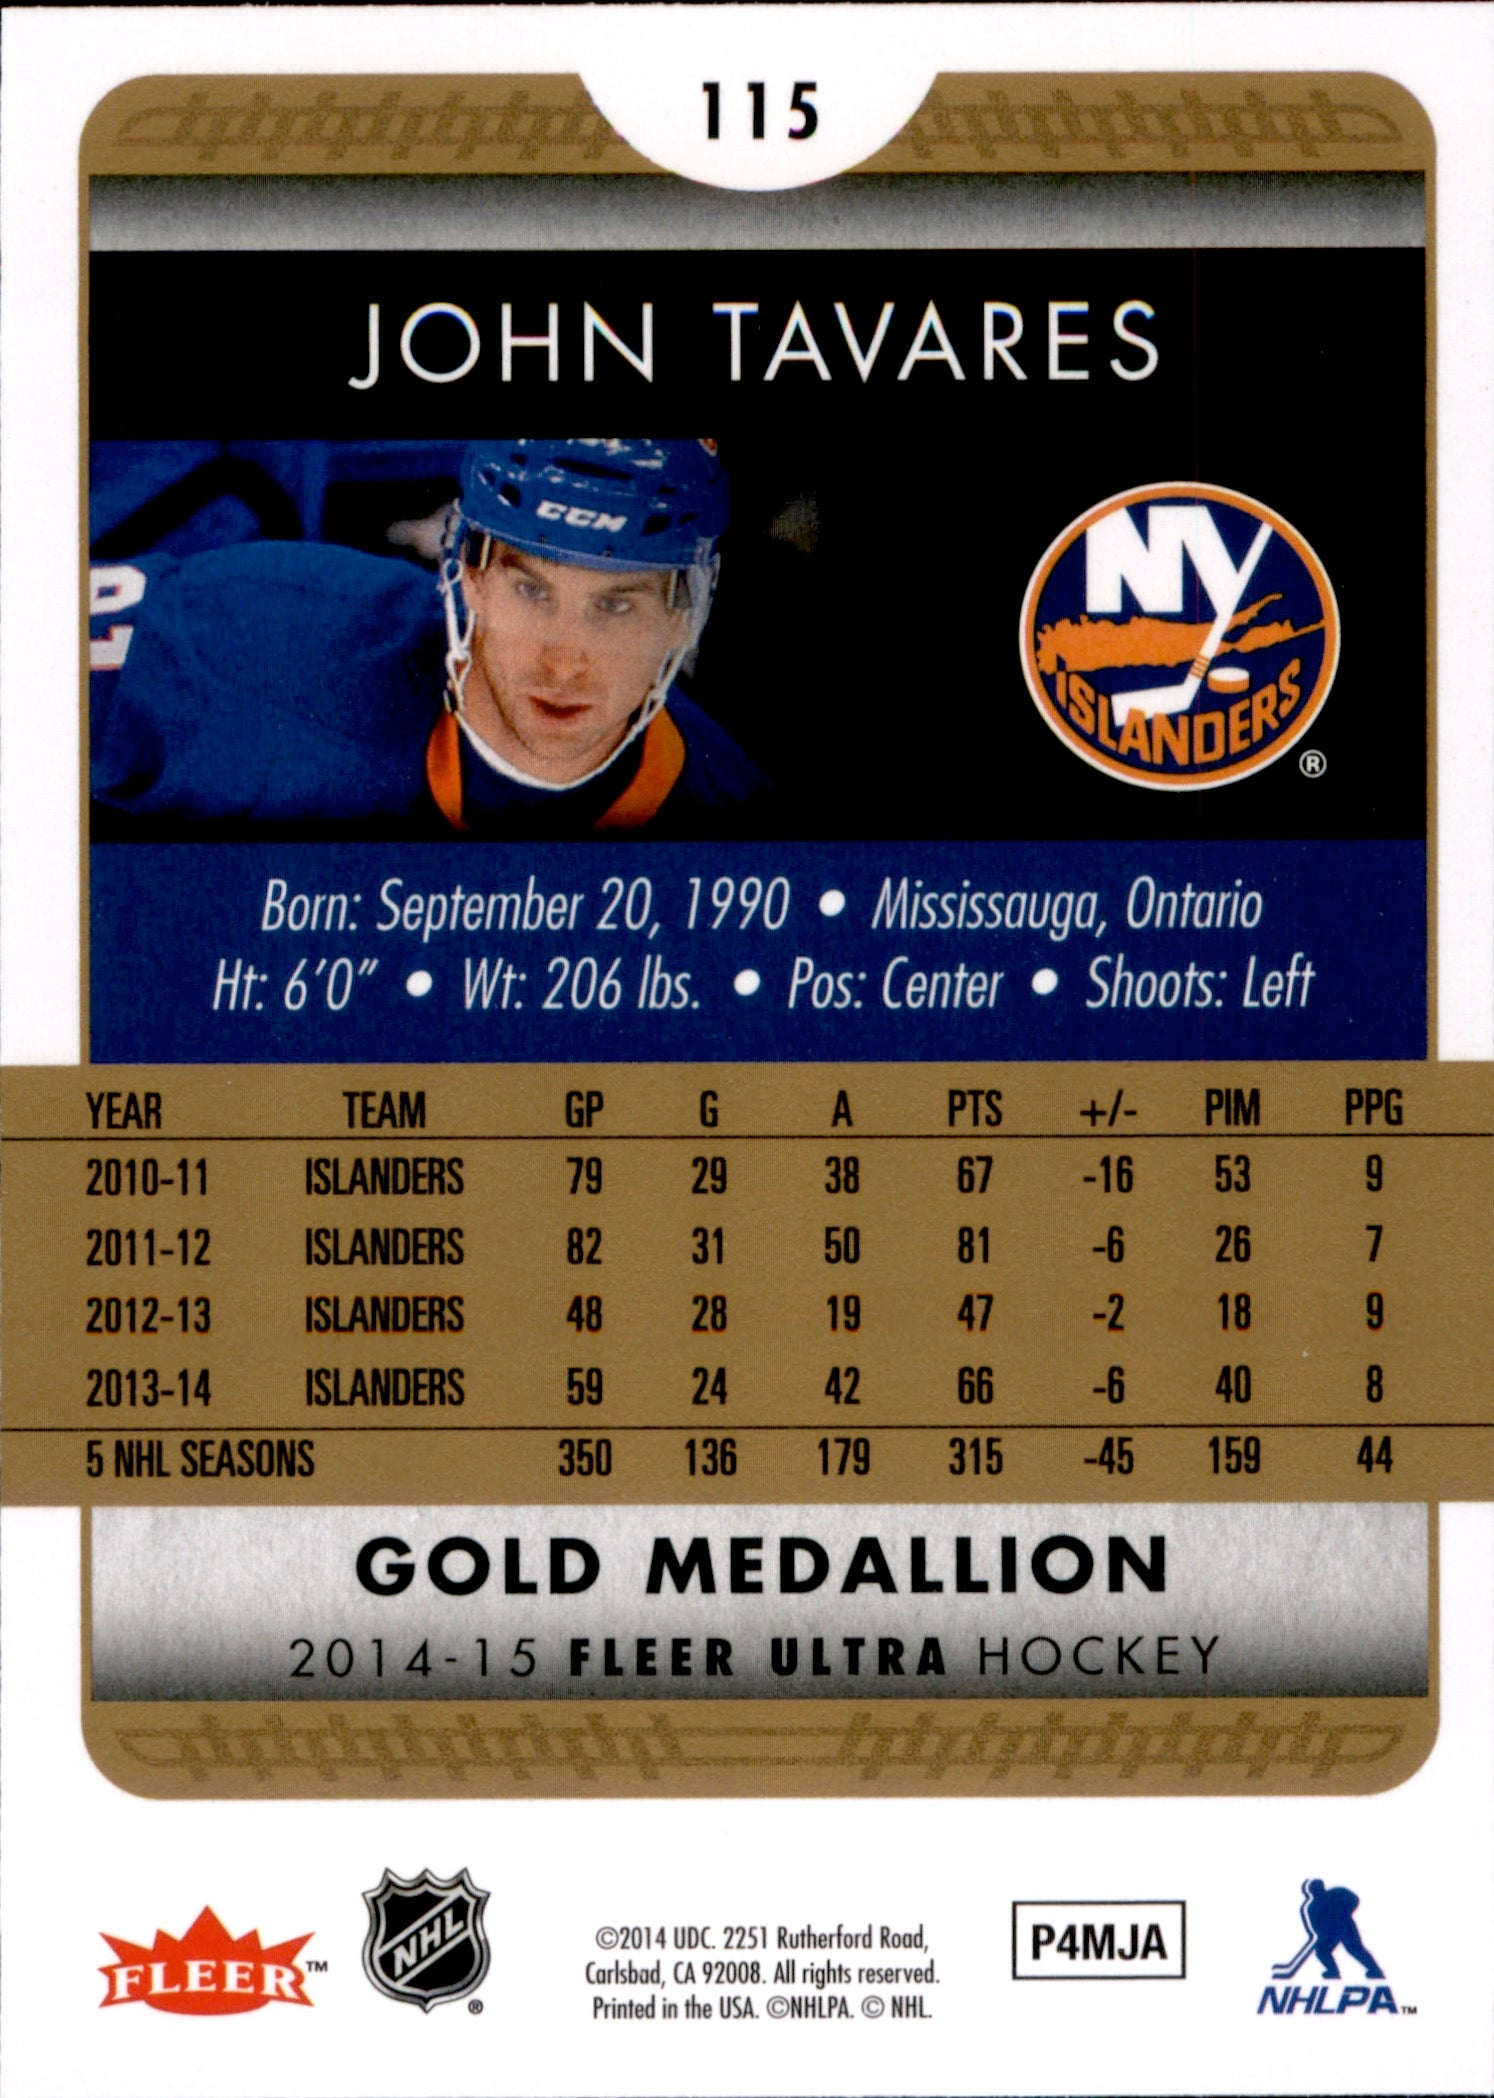 2014-15 Fleer Ultra Gold Medallion #115 John Tavares | Eastridge Sports Cards